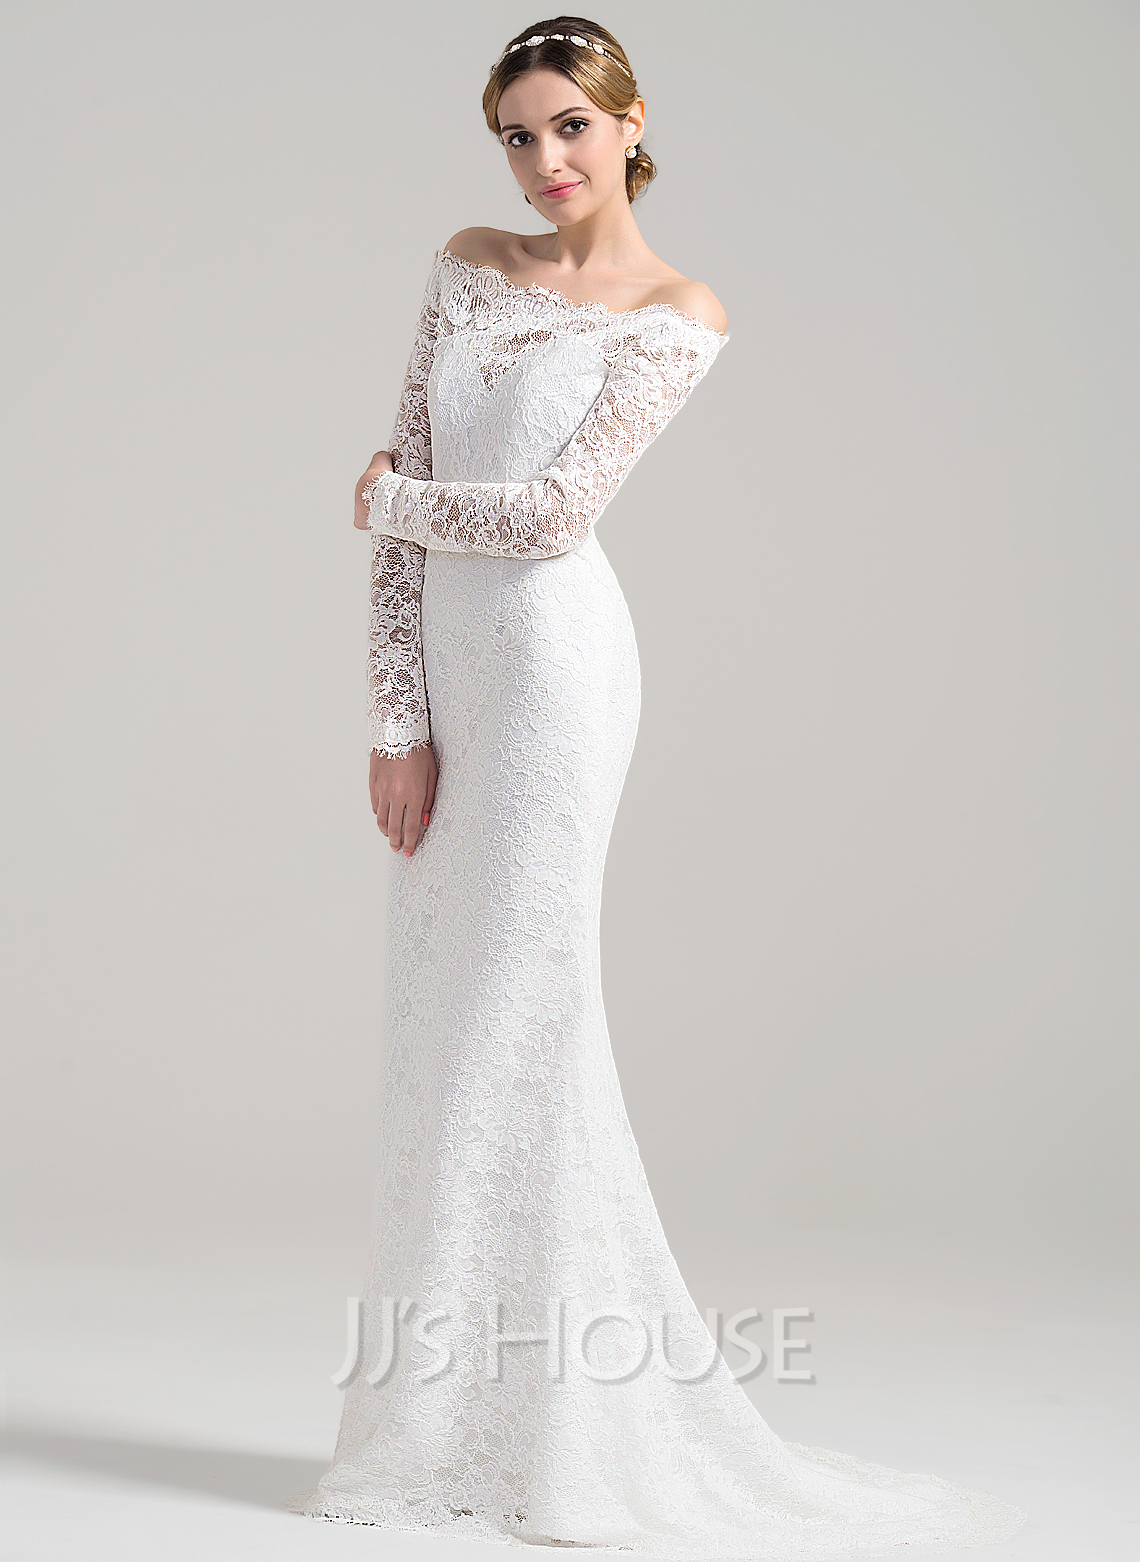 Sheathcolumn off the shoulder sweep train lace wedding dress sheathcolumn off the shoulder sweep train lace wedding dress loading zoom junglespirit